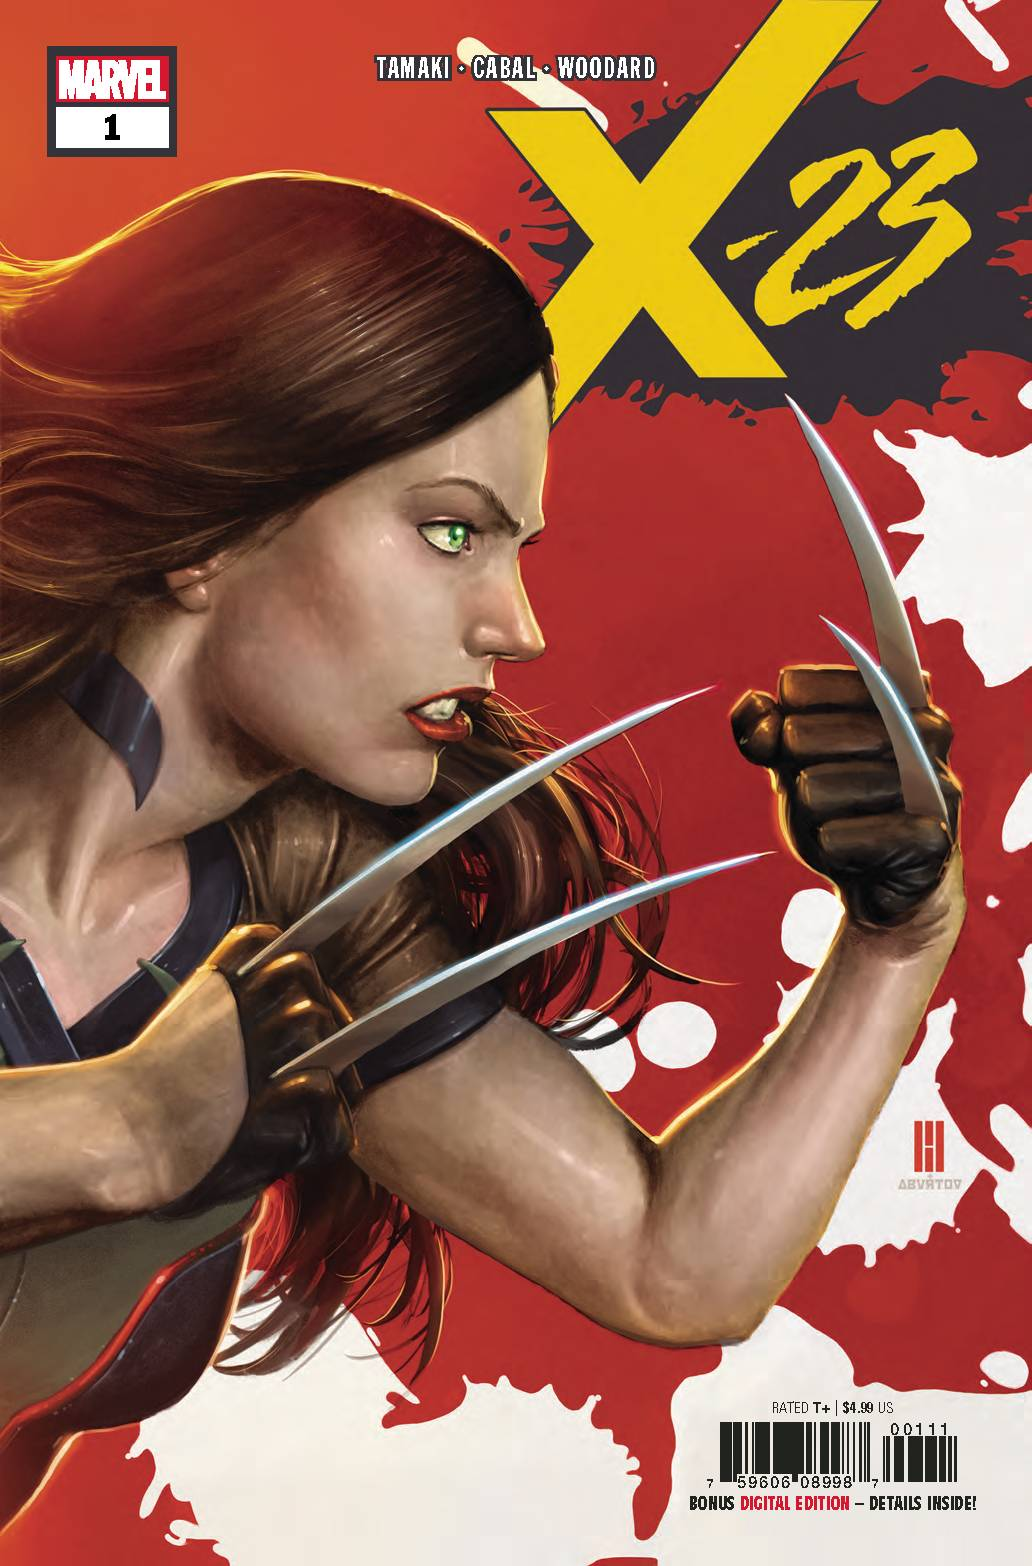 X-23 #1 - Lauren's PickWriter: Mariko TamakiArtist: Juann CabalColorist: Nolan WoodardLetter: VC's Cory PetitFollow Laura and her newfound sister to a new adventure in X-23 #1! Despite their efforts to curb the effects of the Weapon X program, more clones appear and Wolverine DNA continues to be used to turn mutants into unstoppable super soldiers. Now, Laura and Gabby go on the search for a missing geneticist whose disappearance has sinister implications. I really don't want to spoil the rest of this excellent comic, so let's just say some familiar faces (or iterations of the same familiar face) play a significant role as the story moves forward. I never get excited enough about superhero comics to choose them for my staff pick, so you know this one must be good! Check it out NOW!